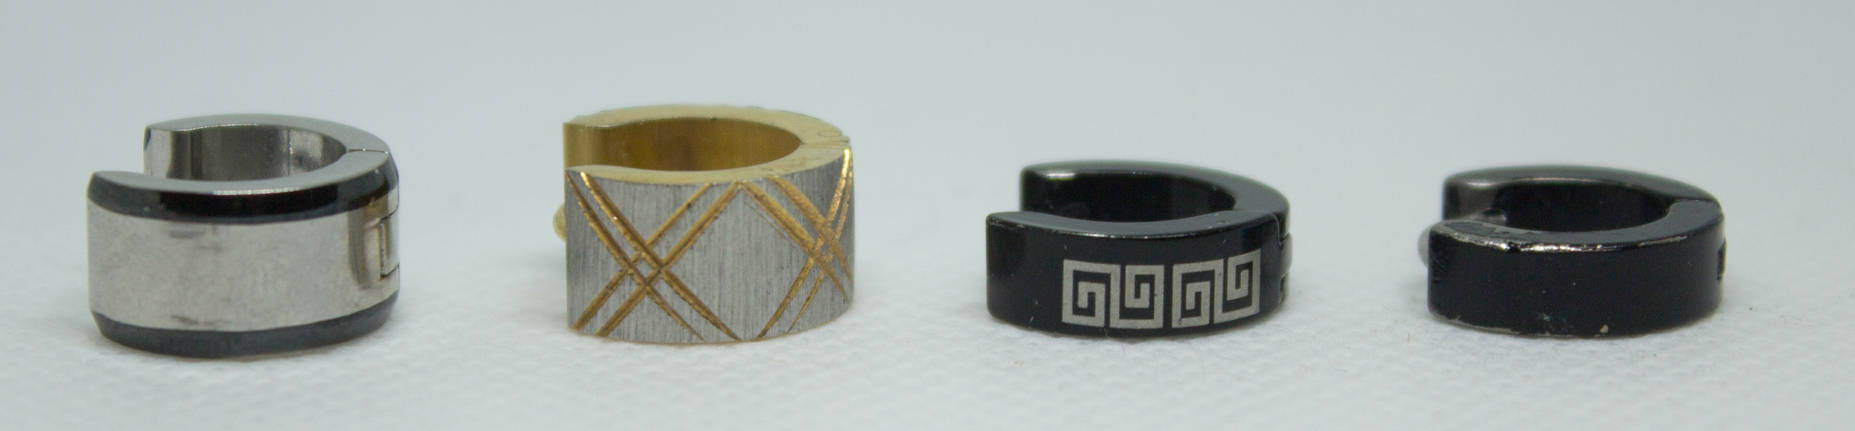 Black and Gold Jewelry 12